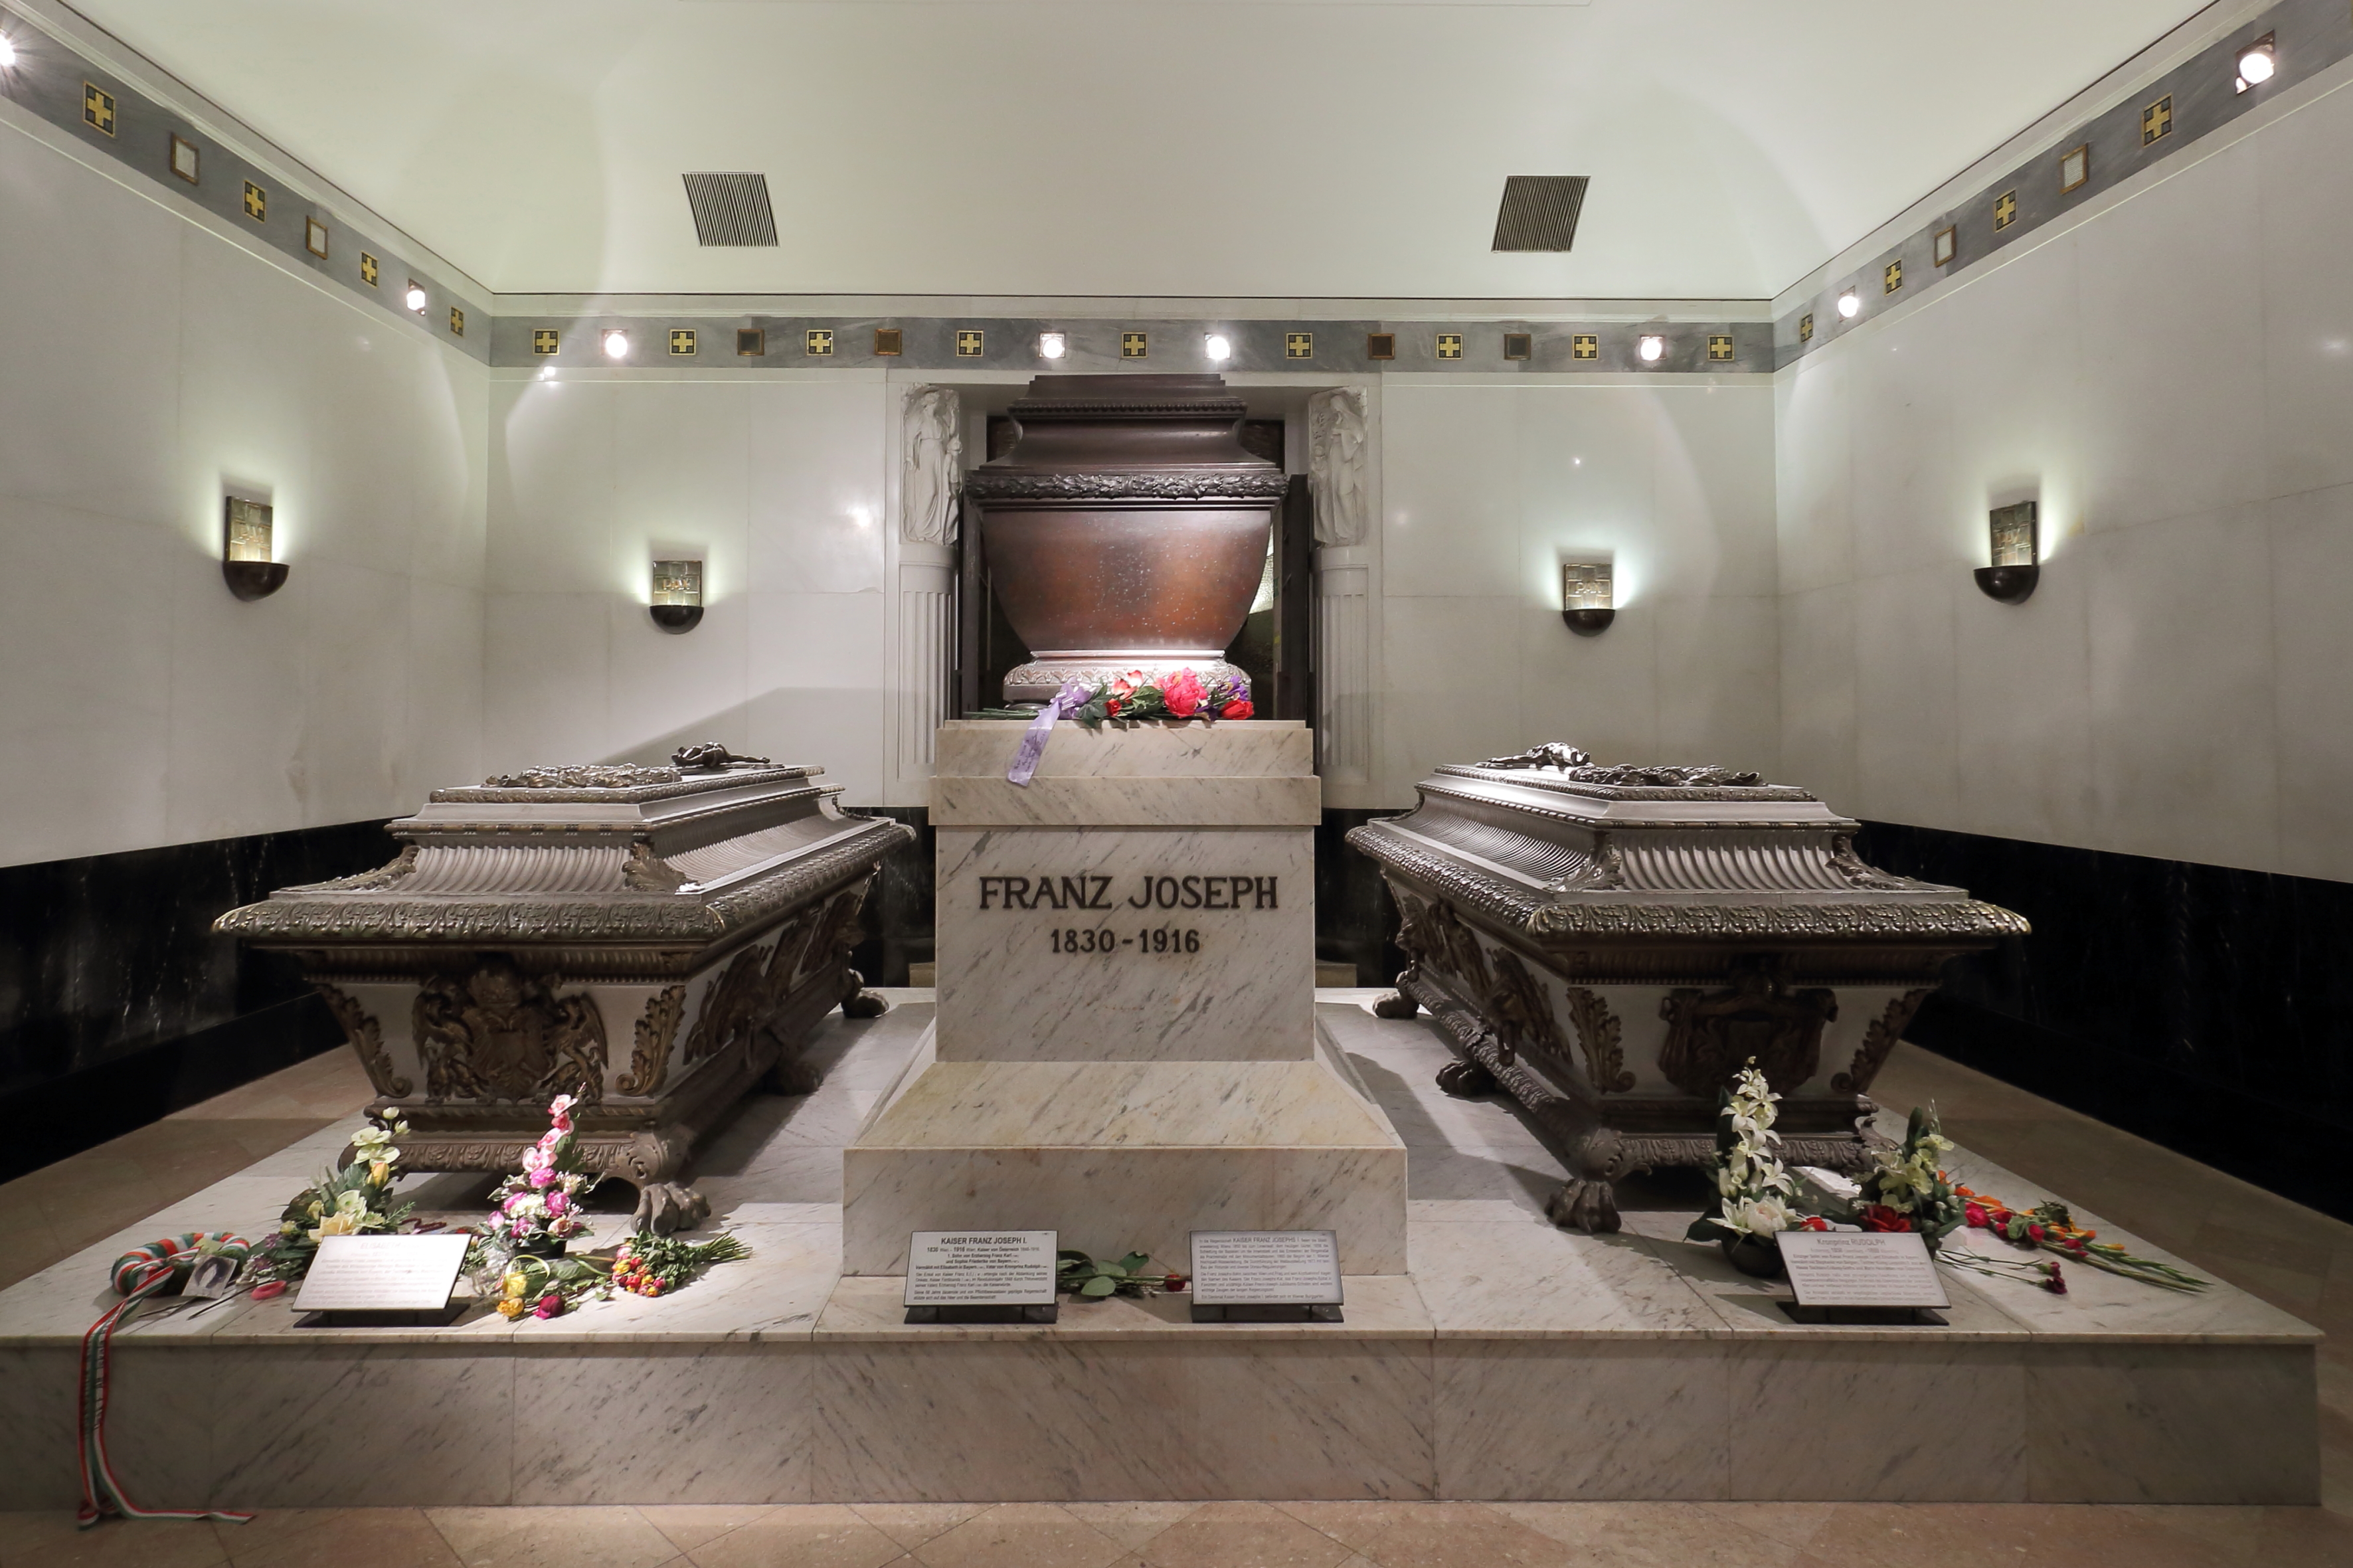 Tomb of Franz Joseph I, to the left Empress Elisabeth, to the right their son Crown Prince Rudolph, in the Imperial Crypt, Vienna. Photo taken on September 8, 2013.